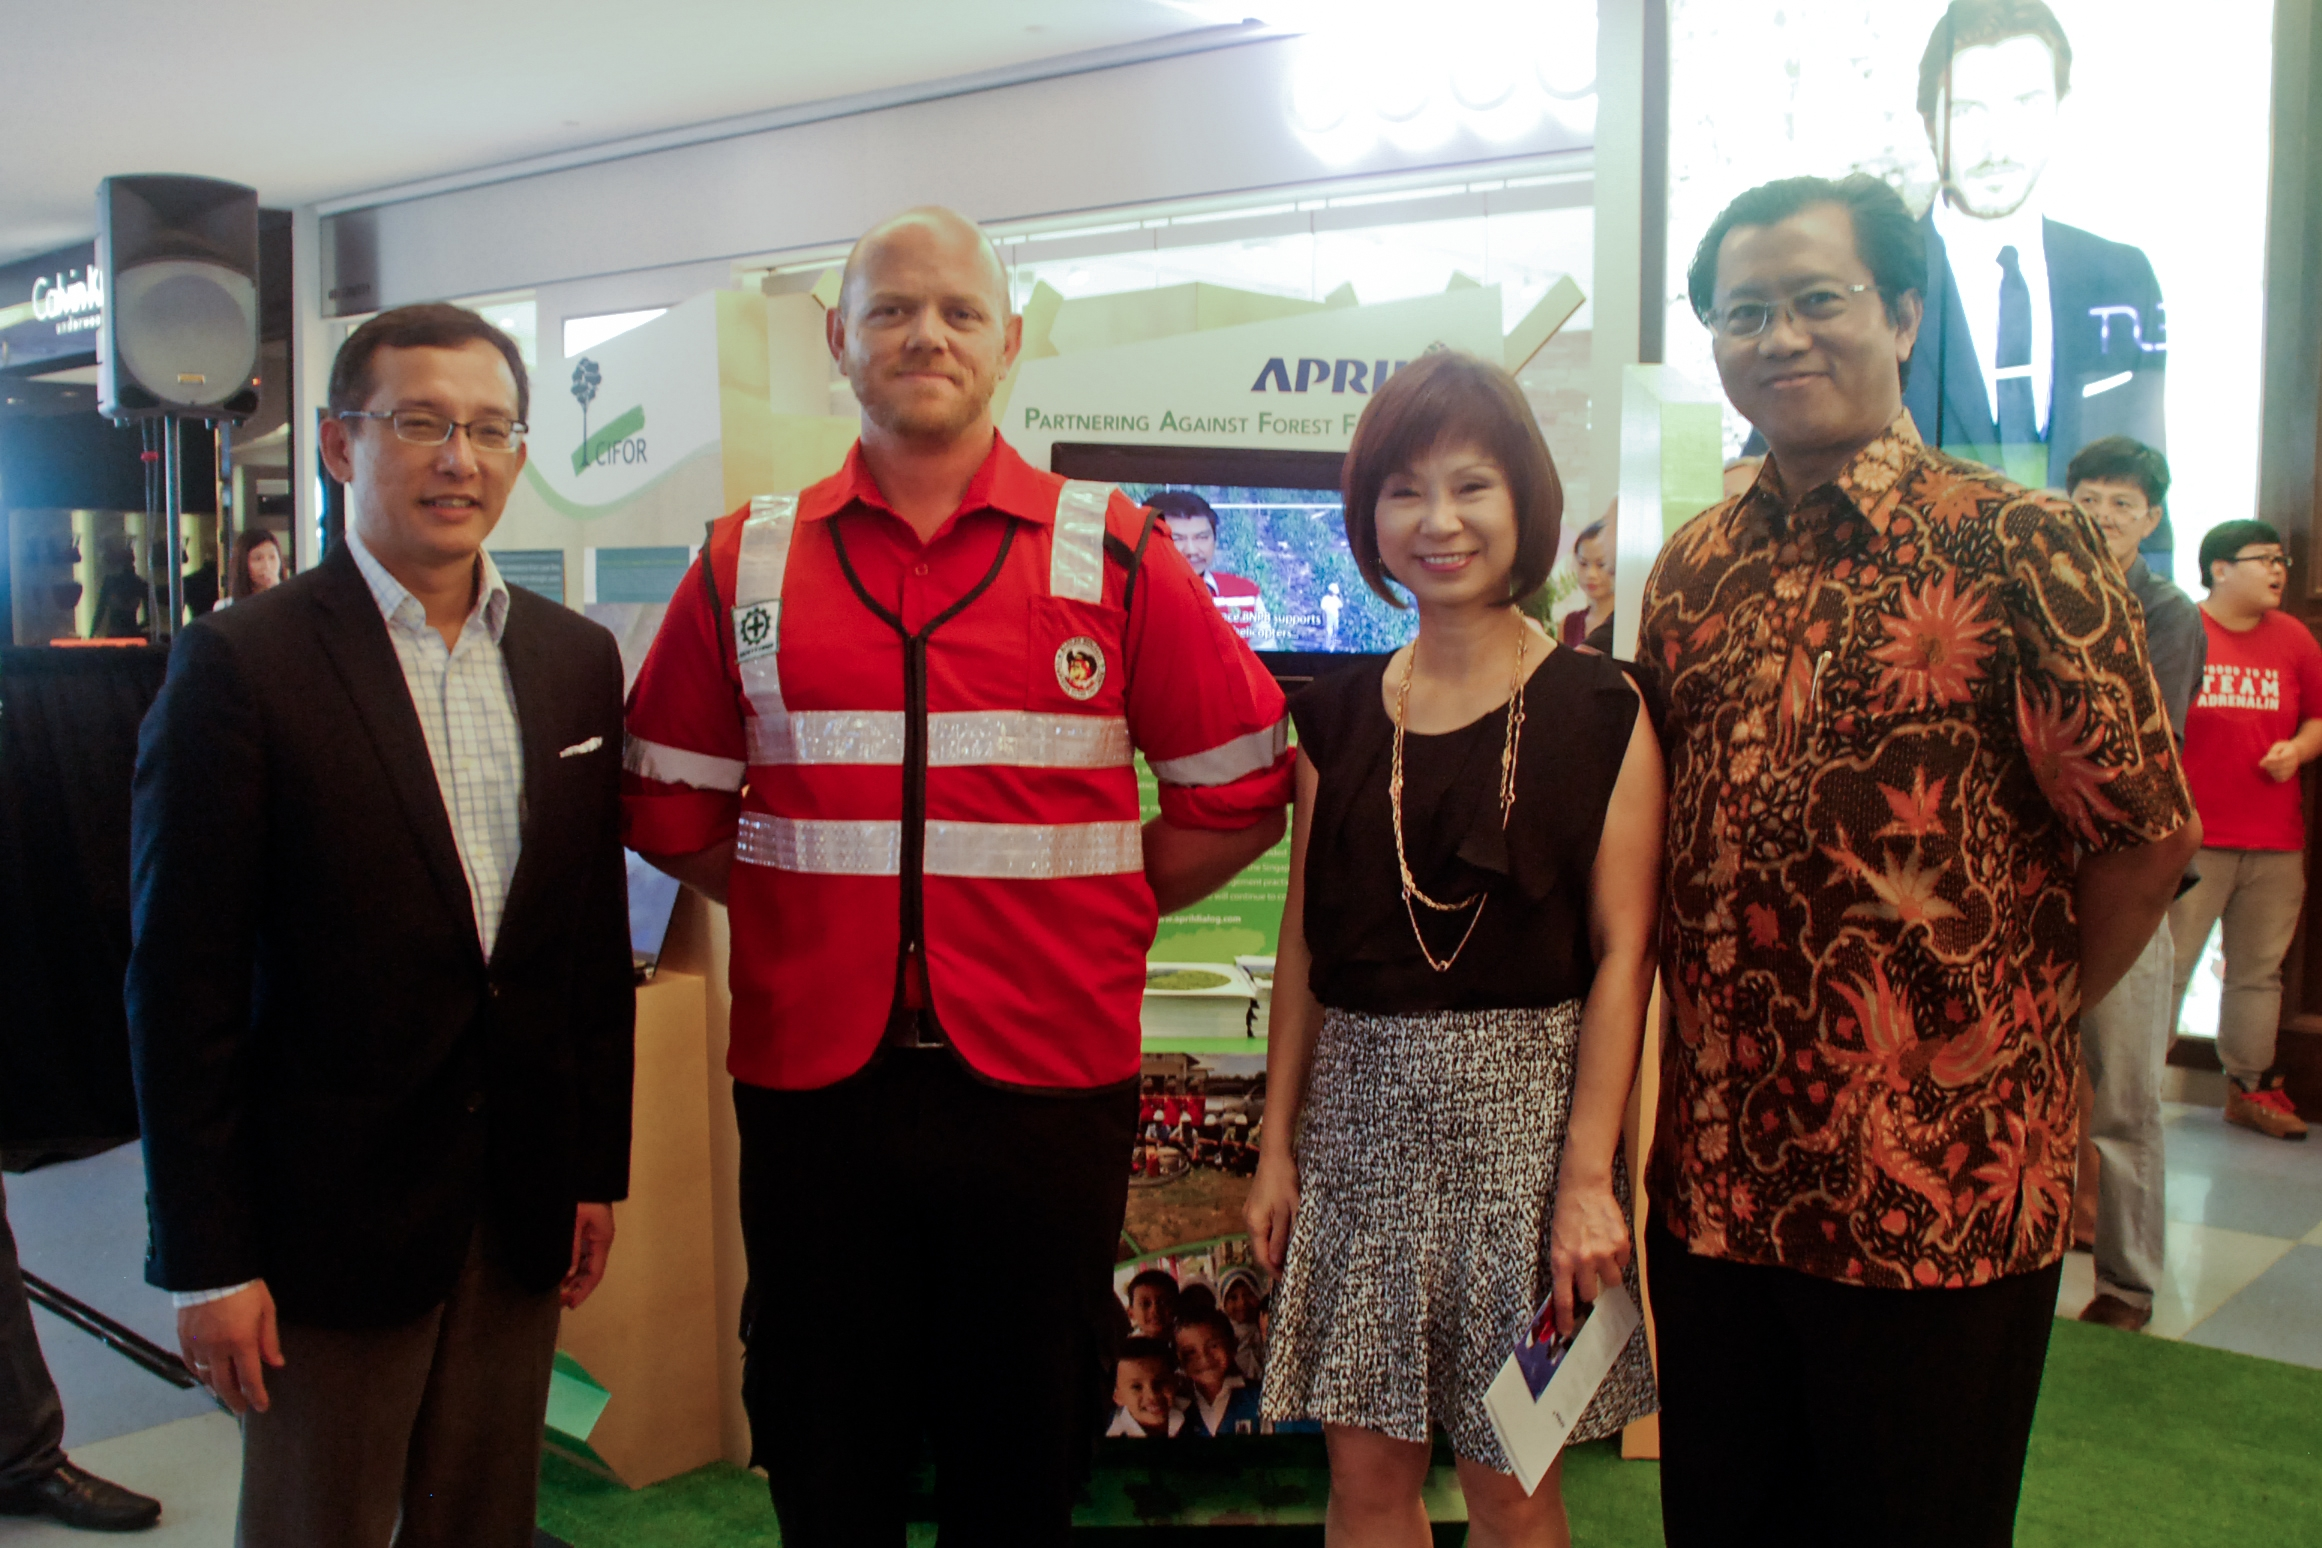 Prof. Simon Tay, Ian Wevell (APRIL), Dr. Amy Khor, Petrus Gunarso (APRIL) at SIIA campaign to stop fire and haze.